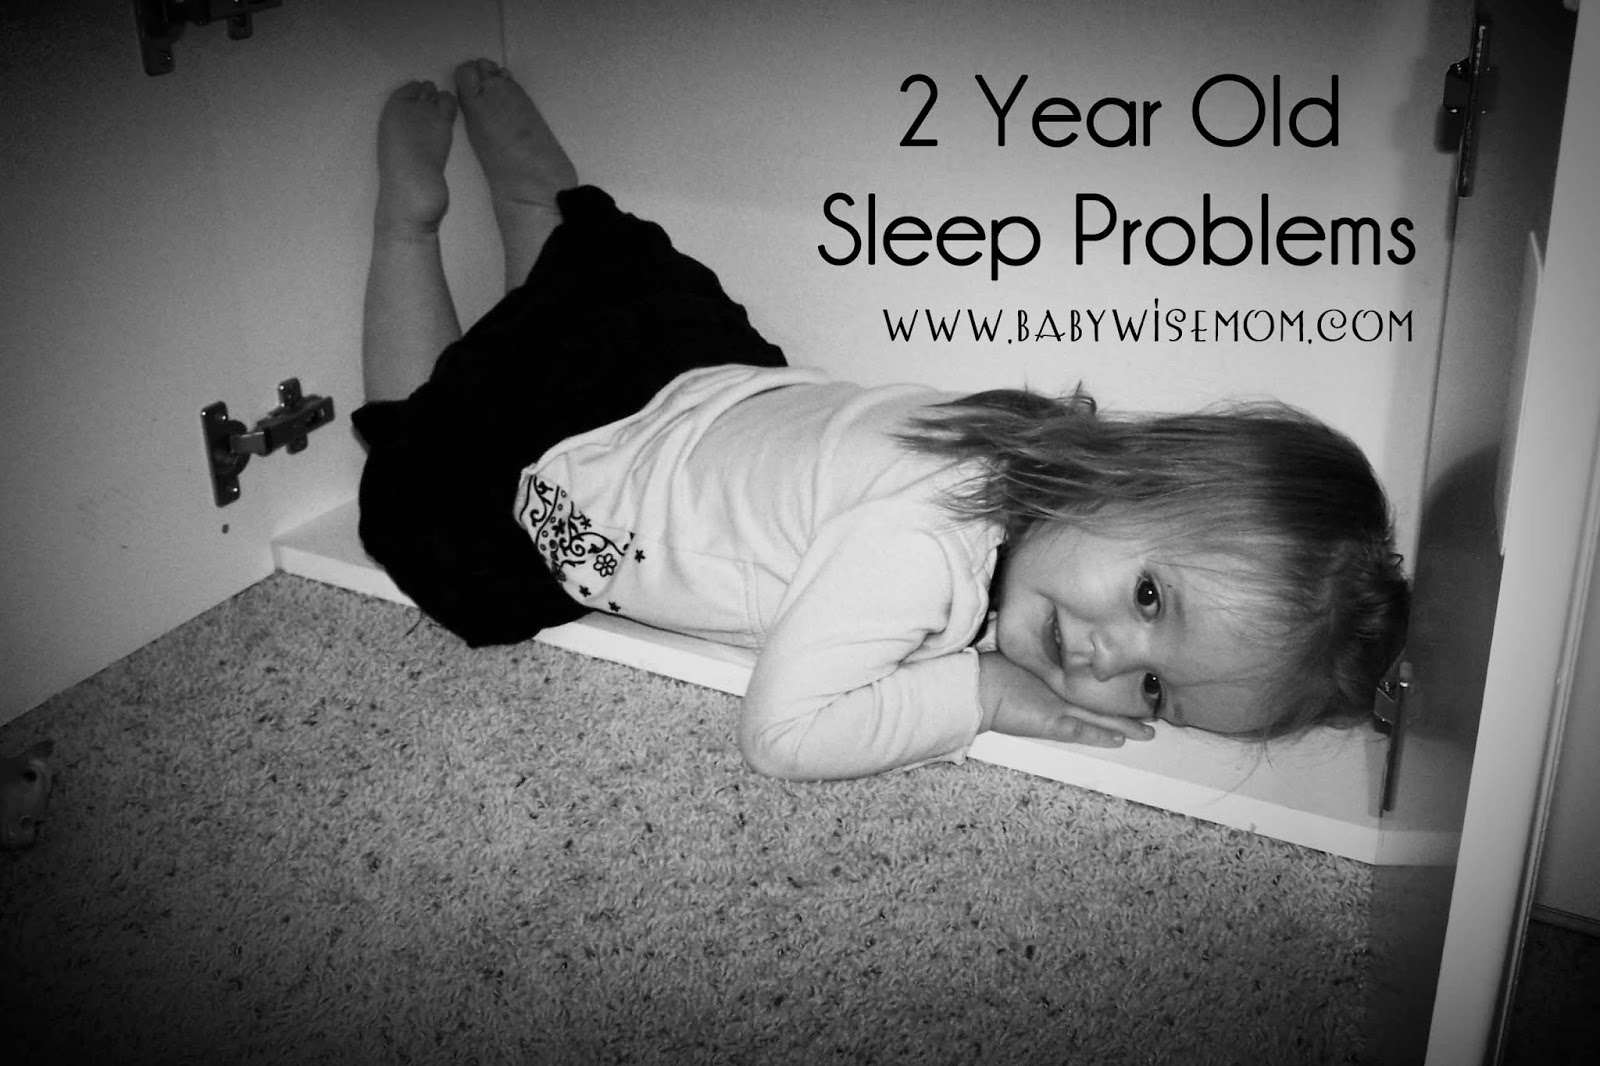 2 Year Old Sleep Problems